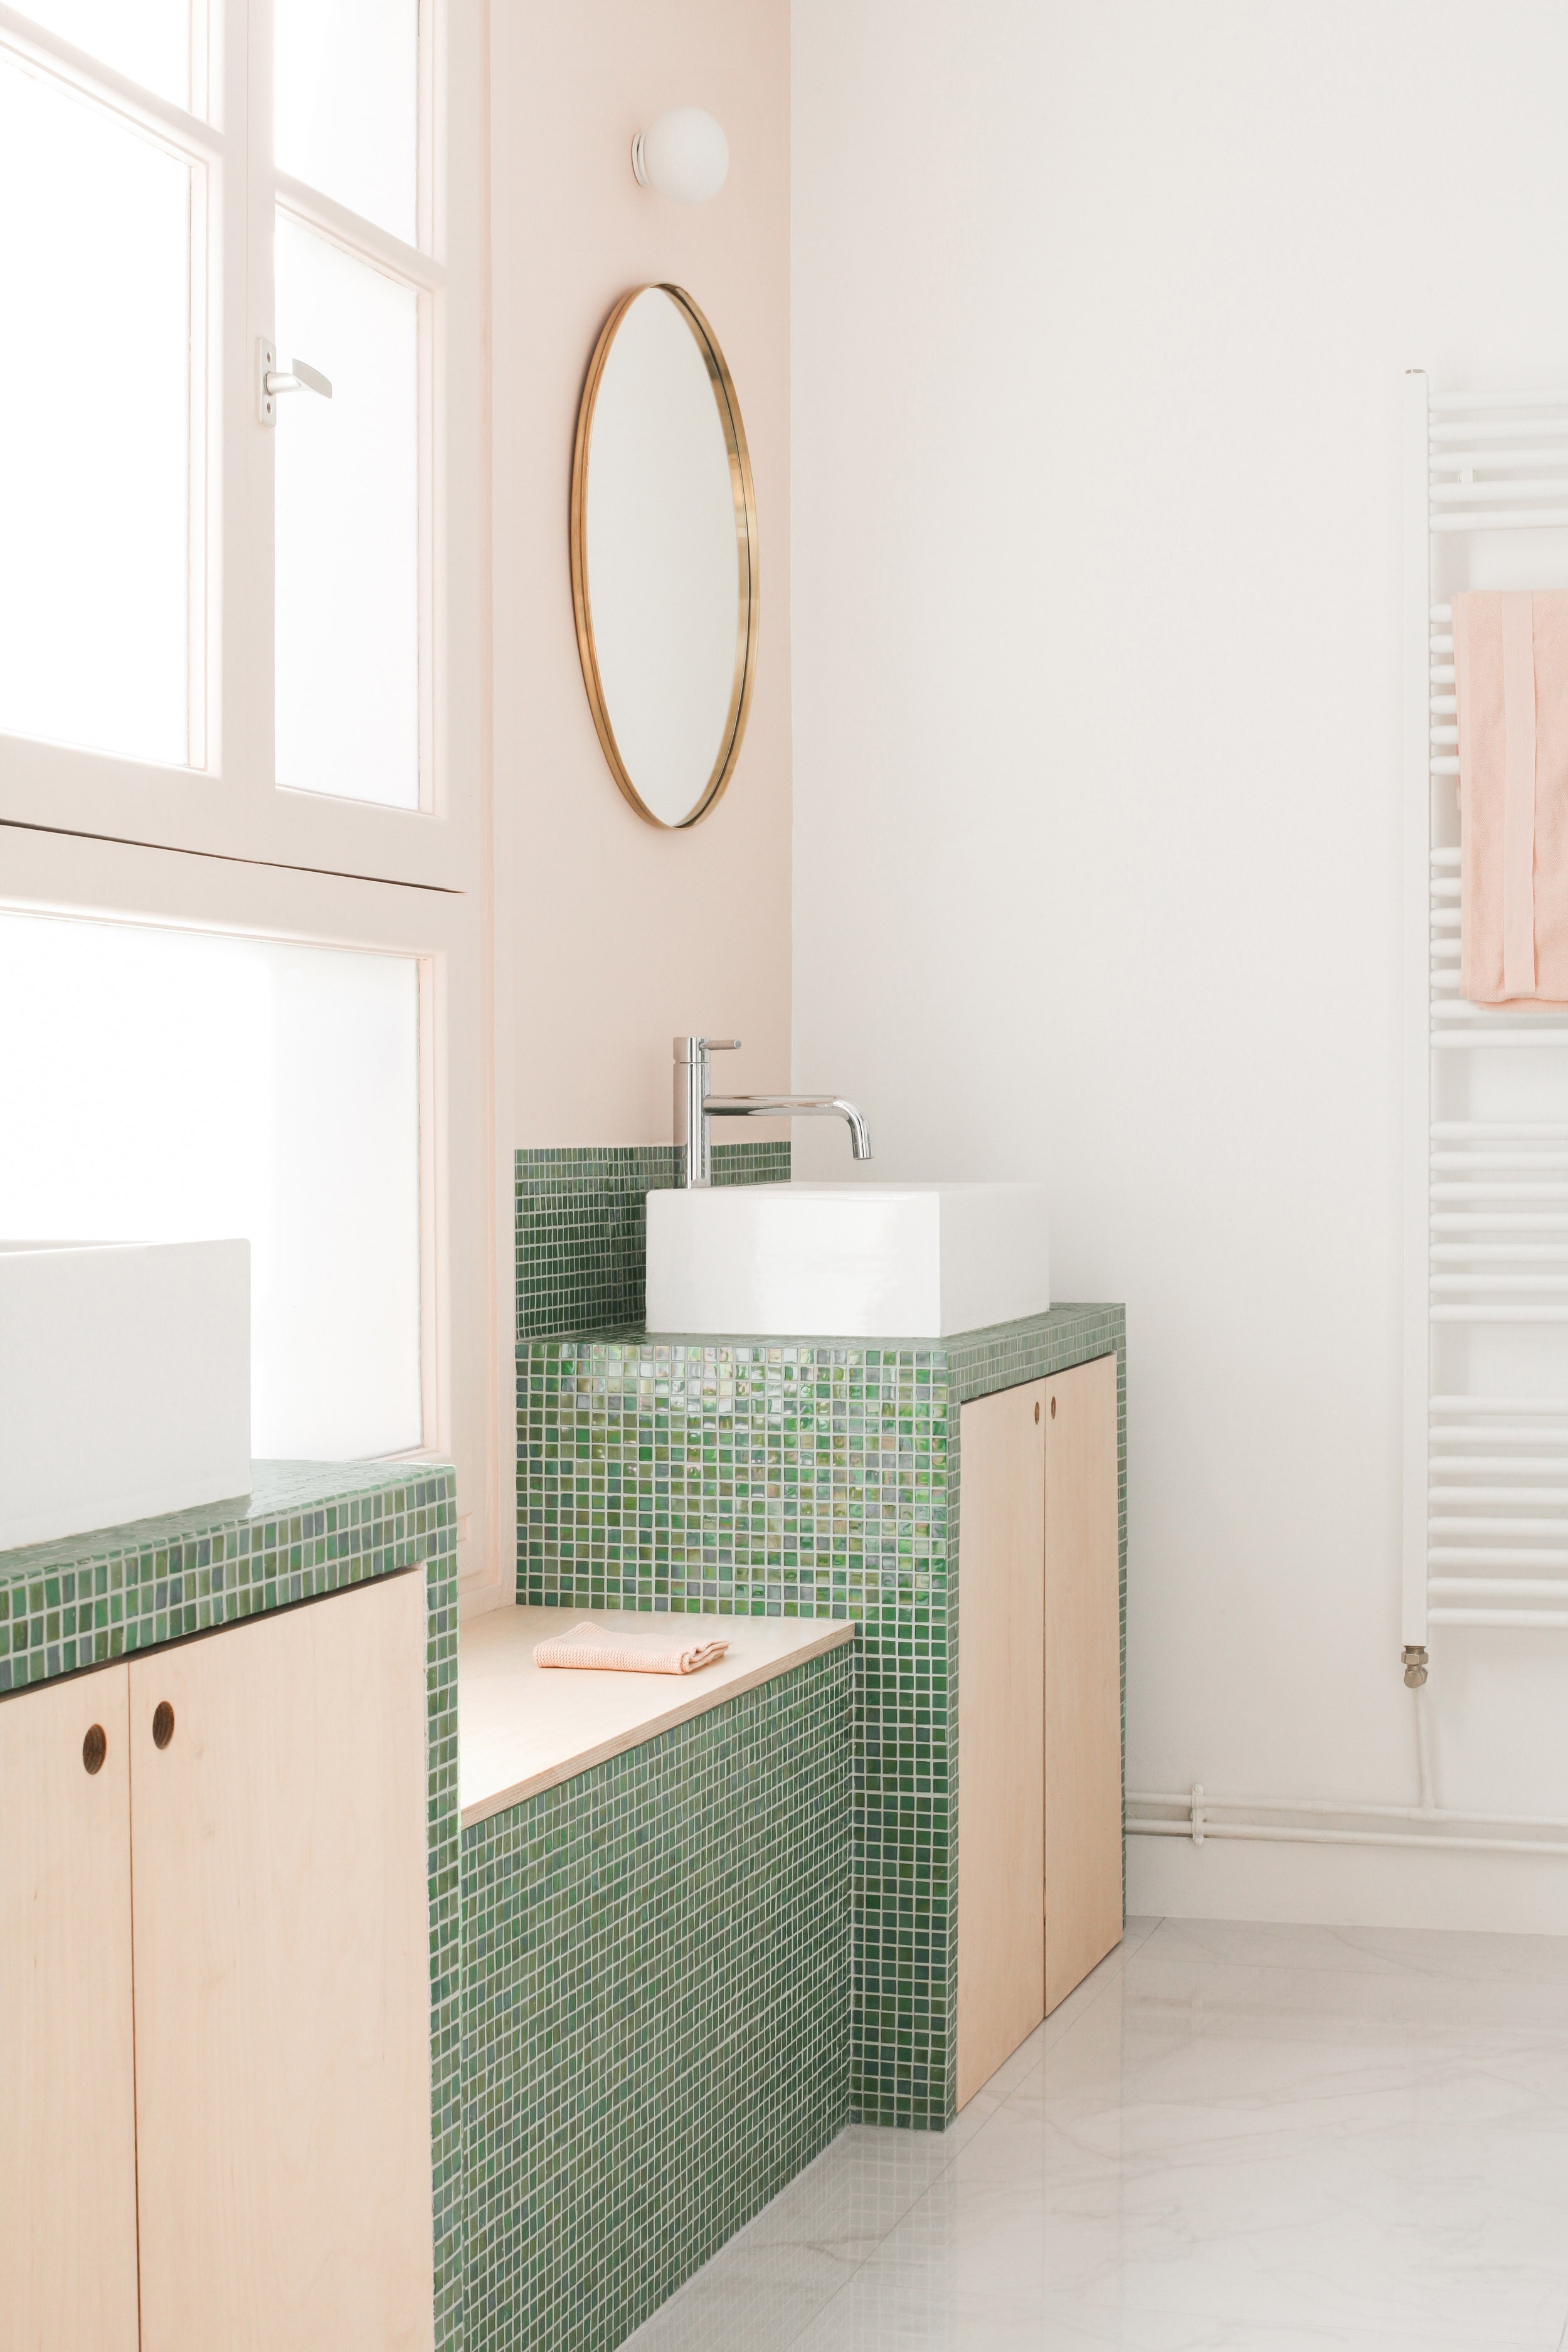 Live Life Dangerously, and Consider a Tile Bathroom Countertop Instead